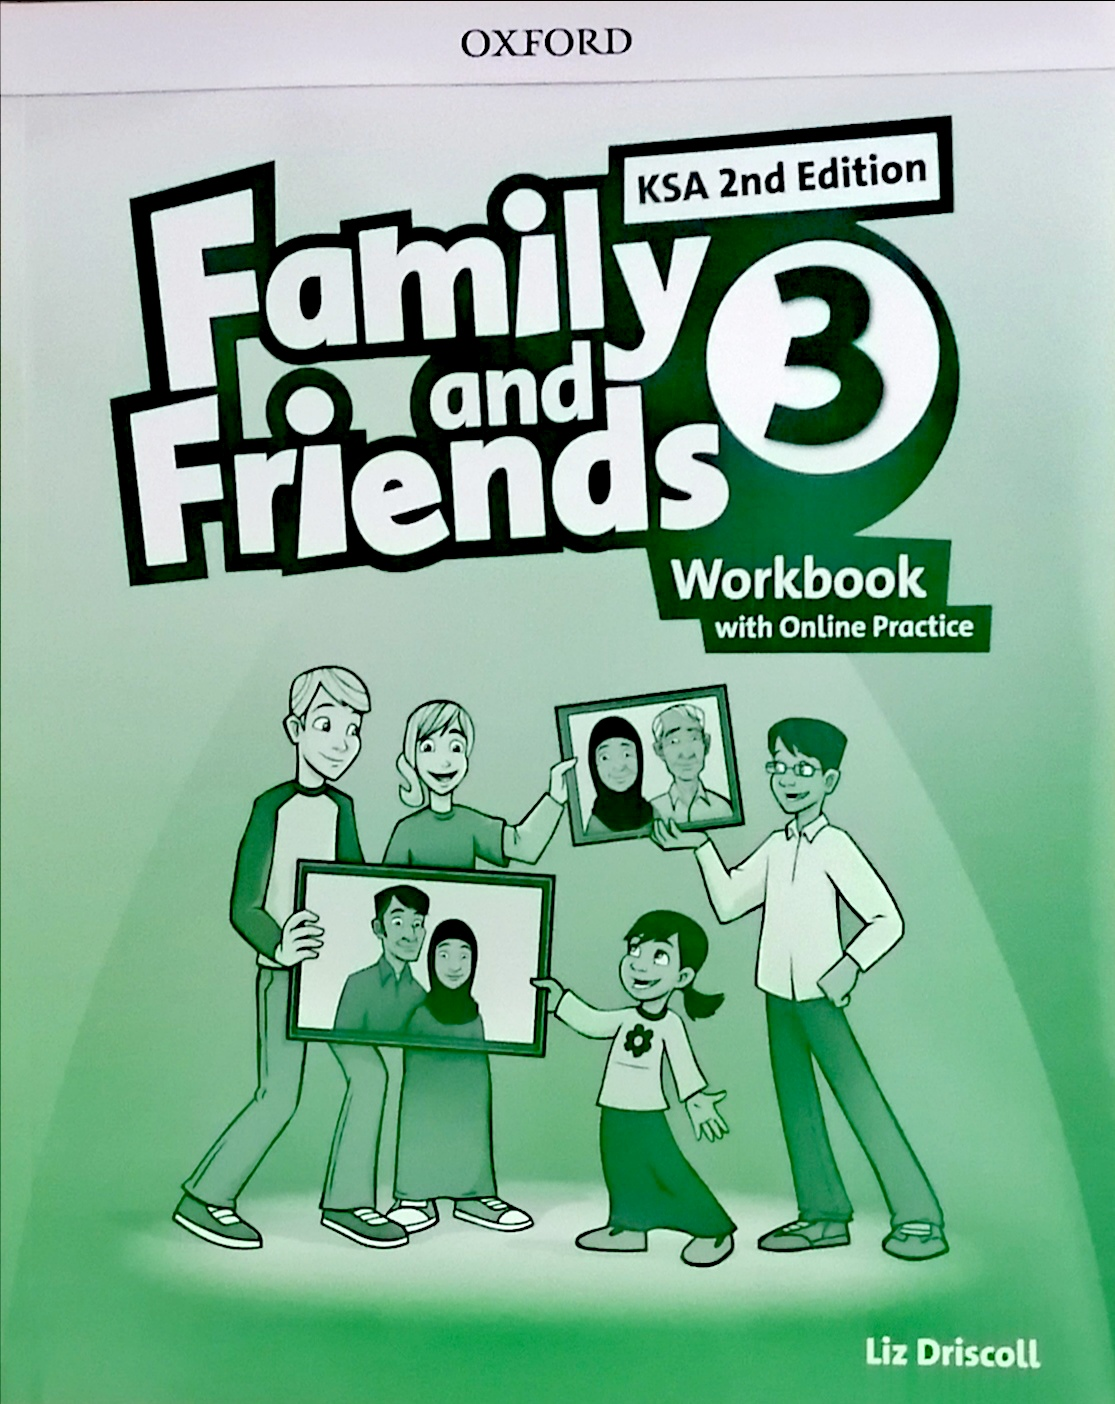 Family and Friends 3 (work)